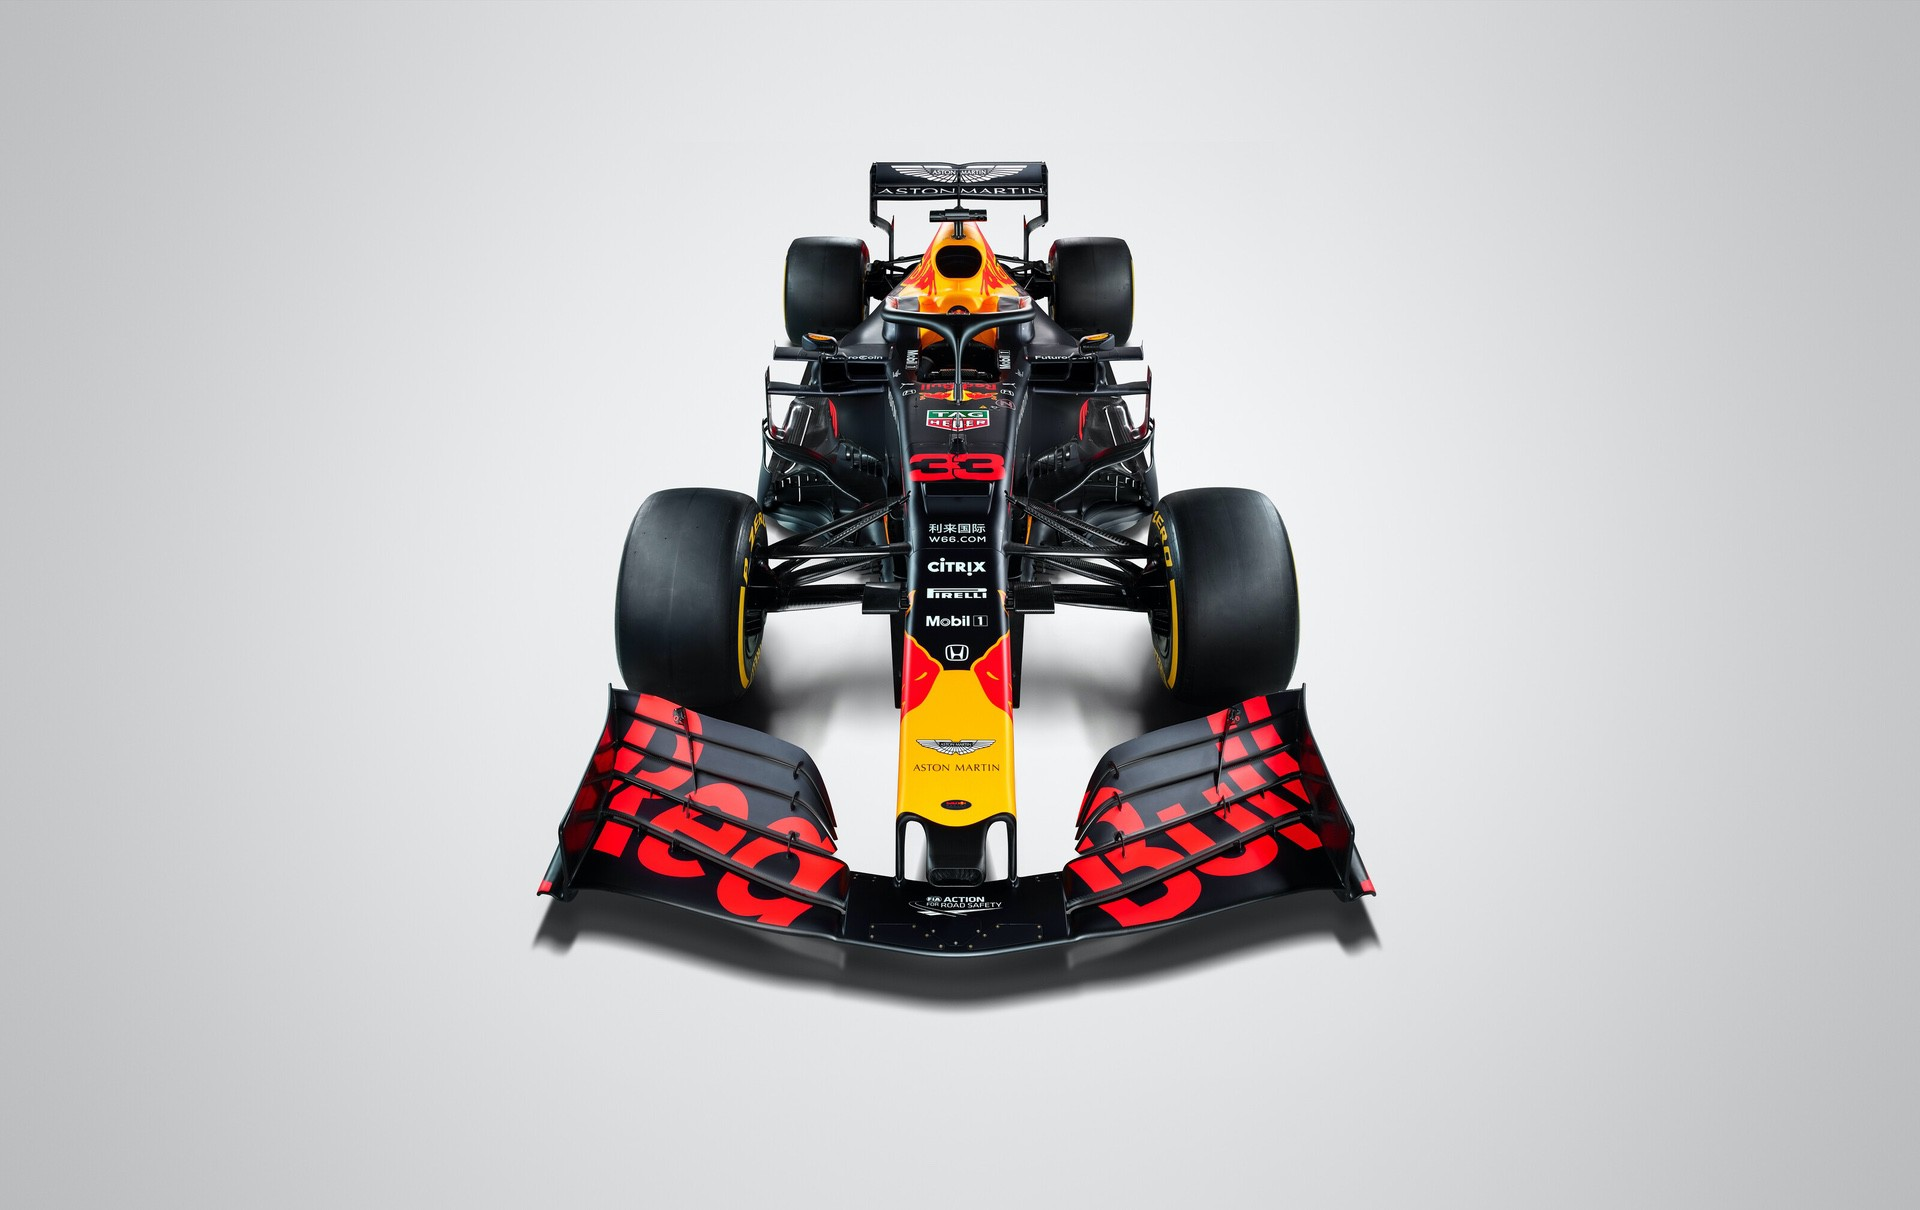 Aston Martin Red Bull Racing RB15 seen during a Studio Shoot in February 2019, United Kingdom // Thomas Butler / Red Bull Content Pool // AP-1YFPFHADD1W11 // Usage for editorial use only // Please go to www.redbullcontentpool.com for further information. //